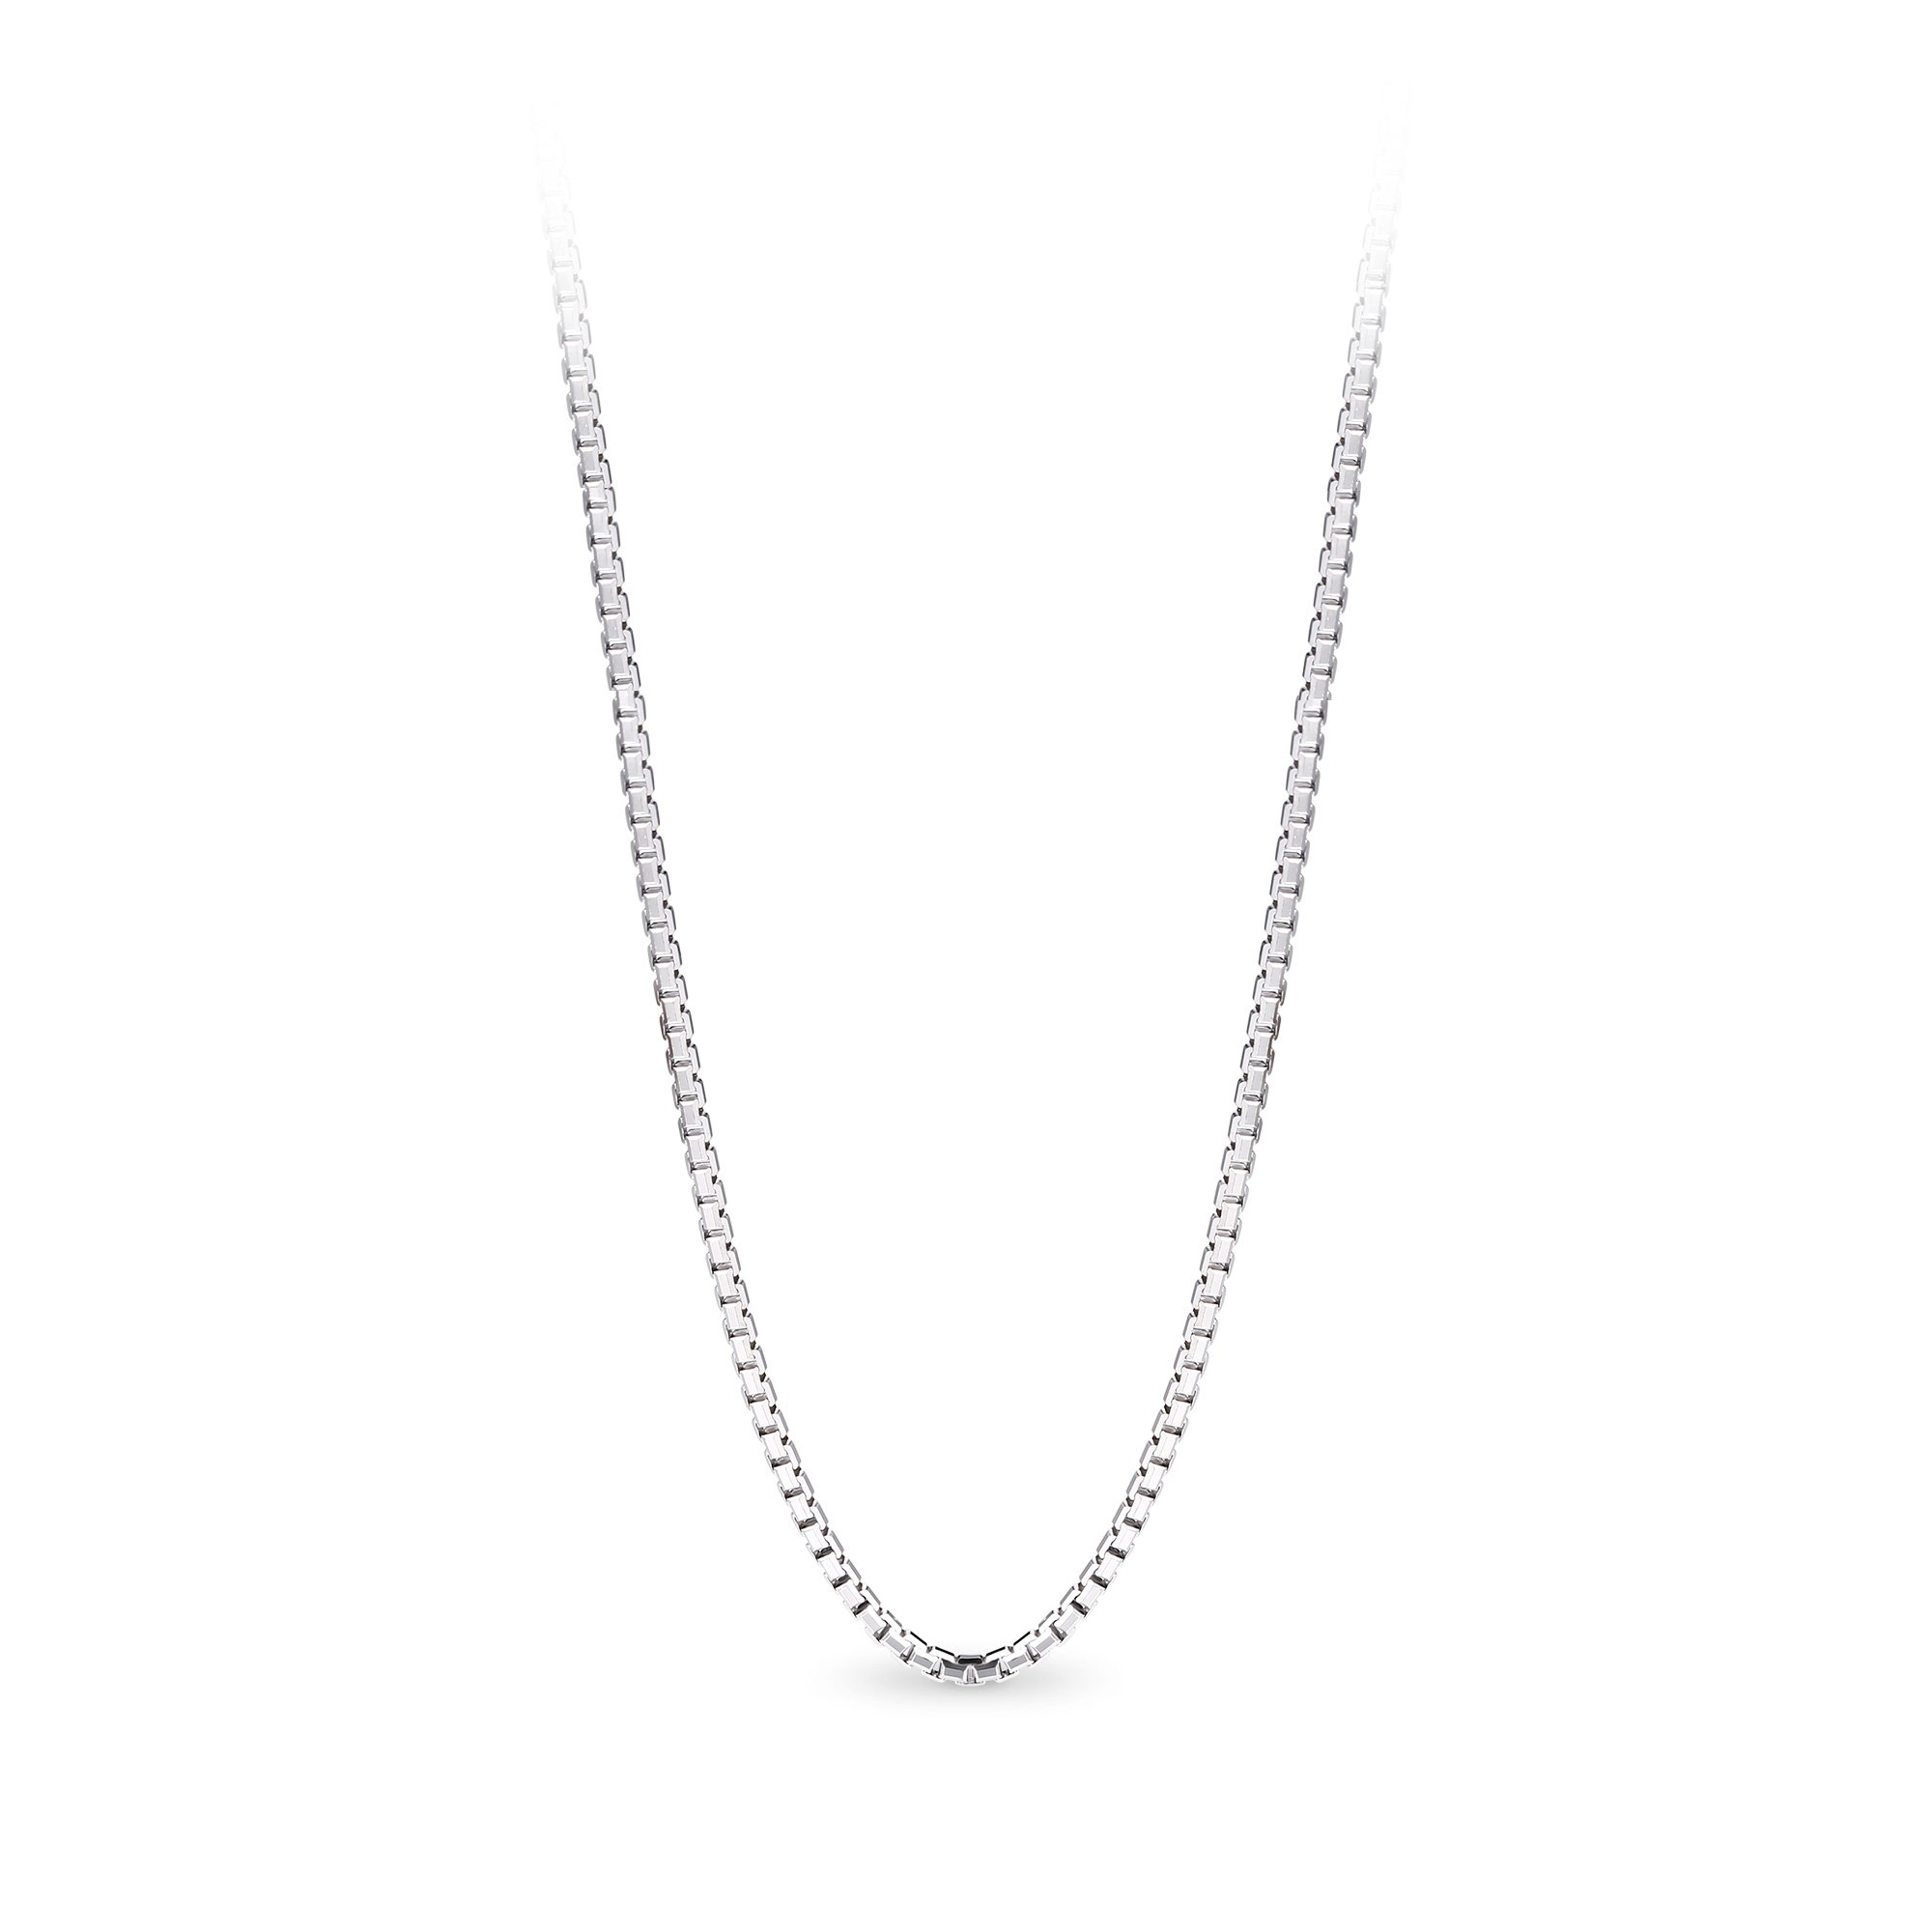 T400 Jewelers 925 Sterling Silver 1.5mm Box Chain Italian Necklace, 24''